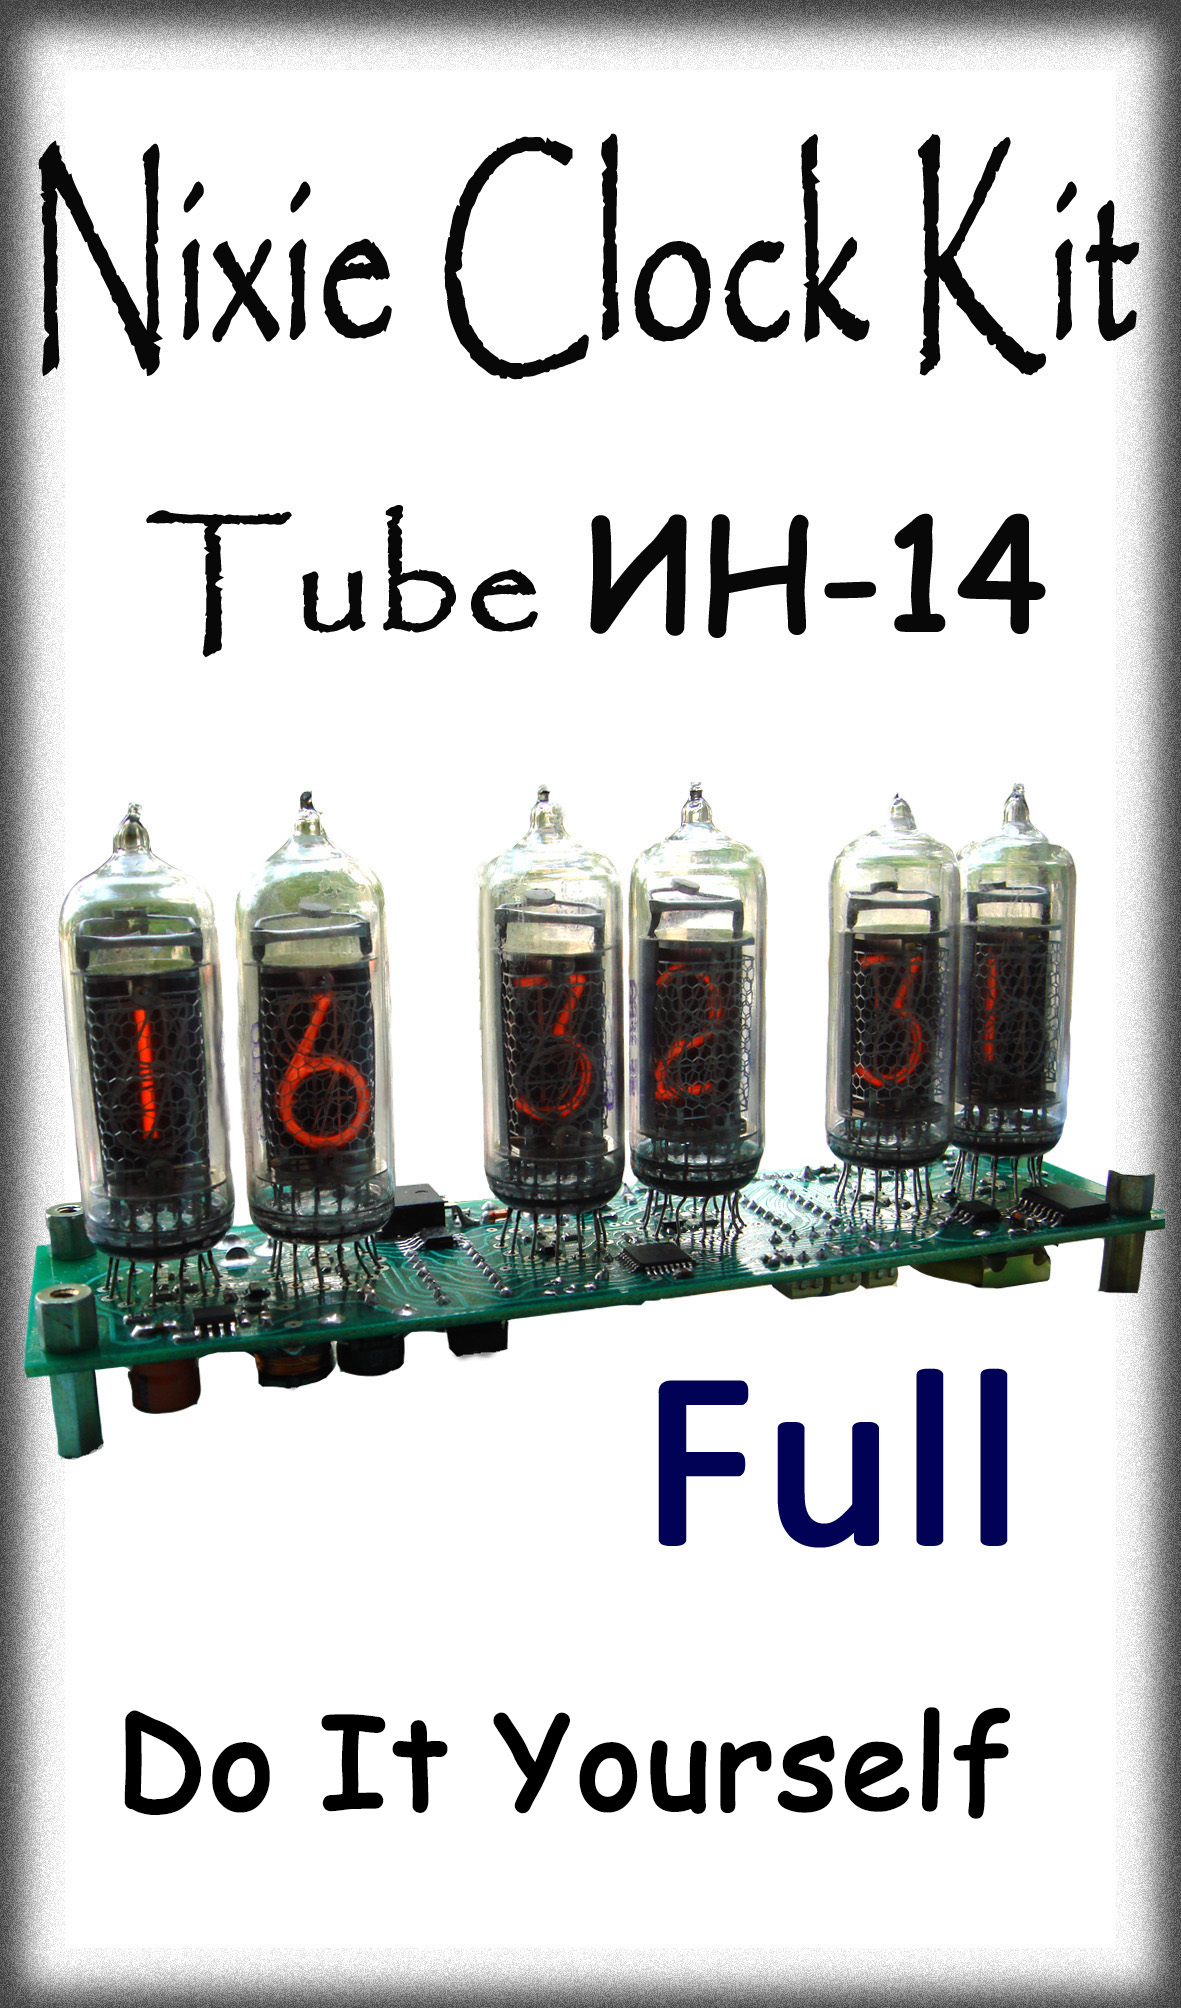 Nixie Clock IN-14 Full